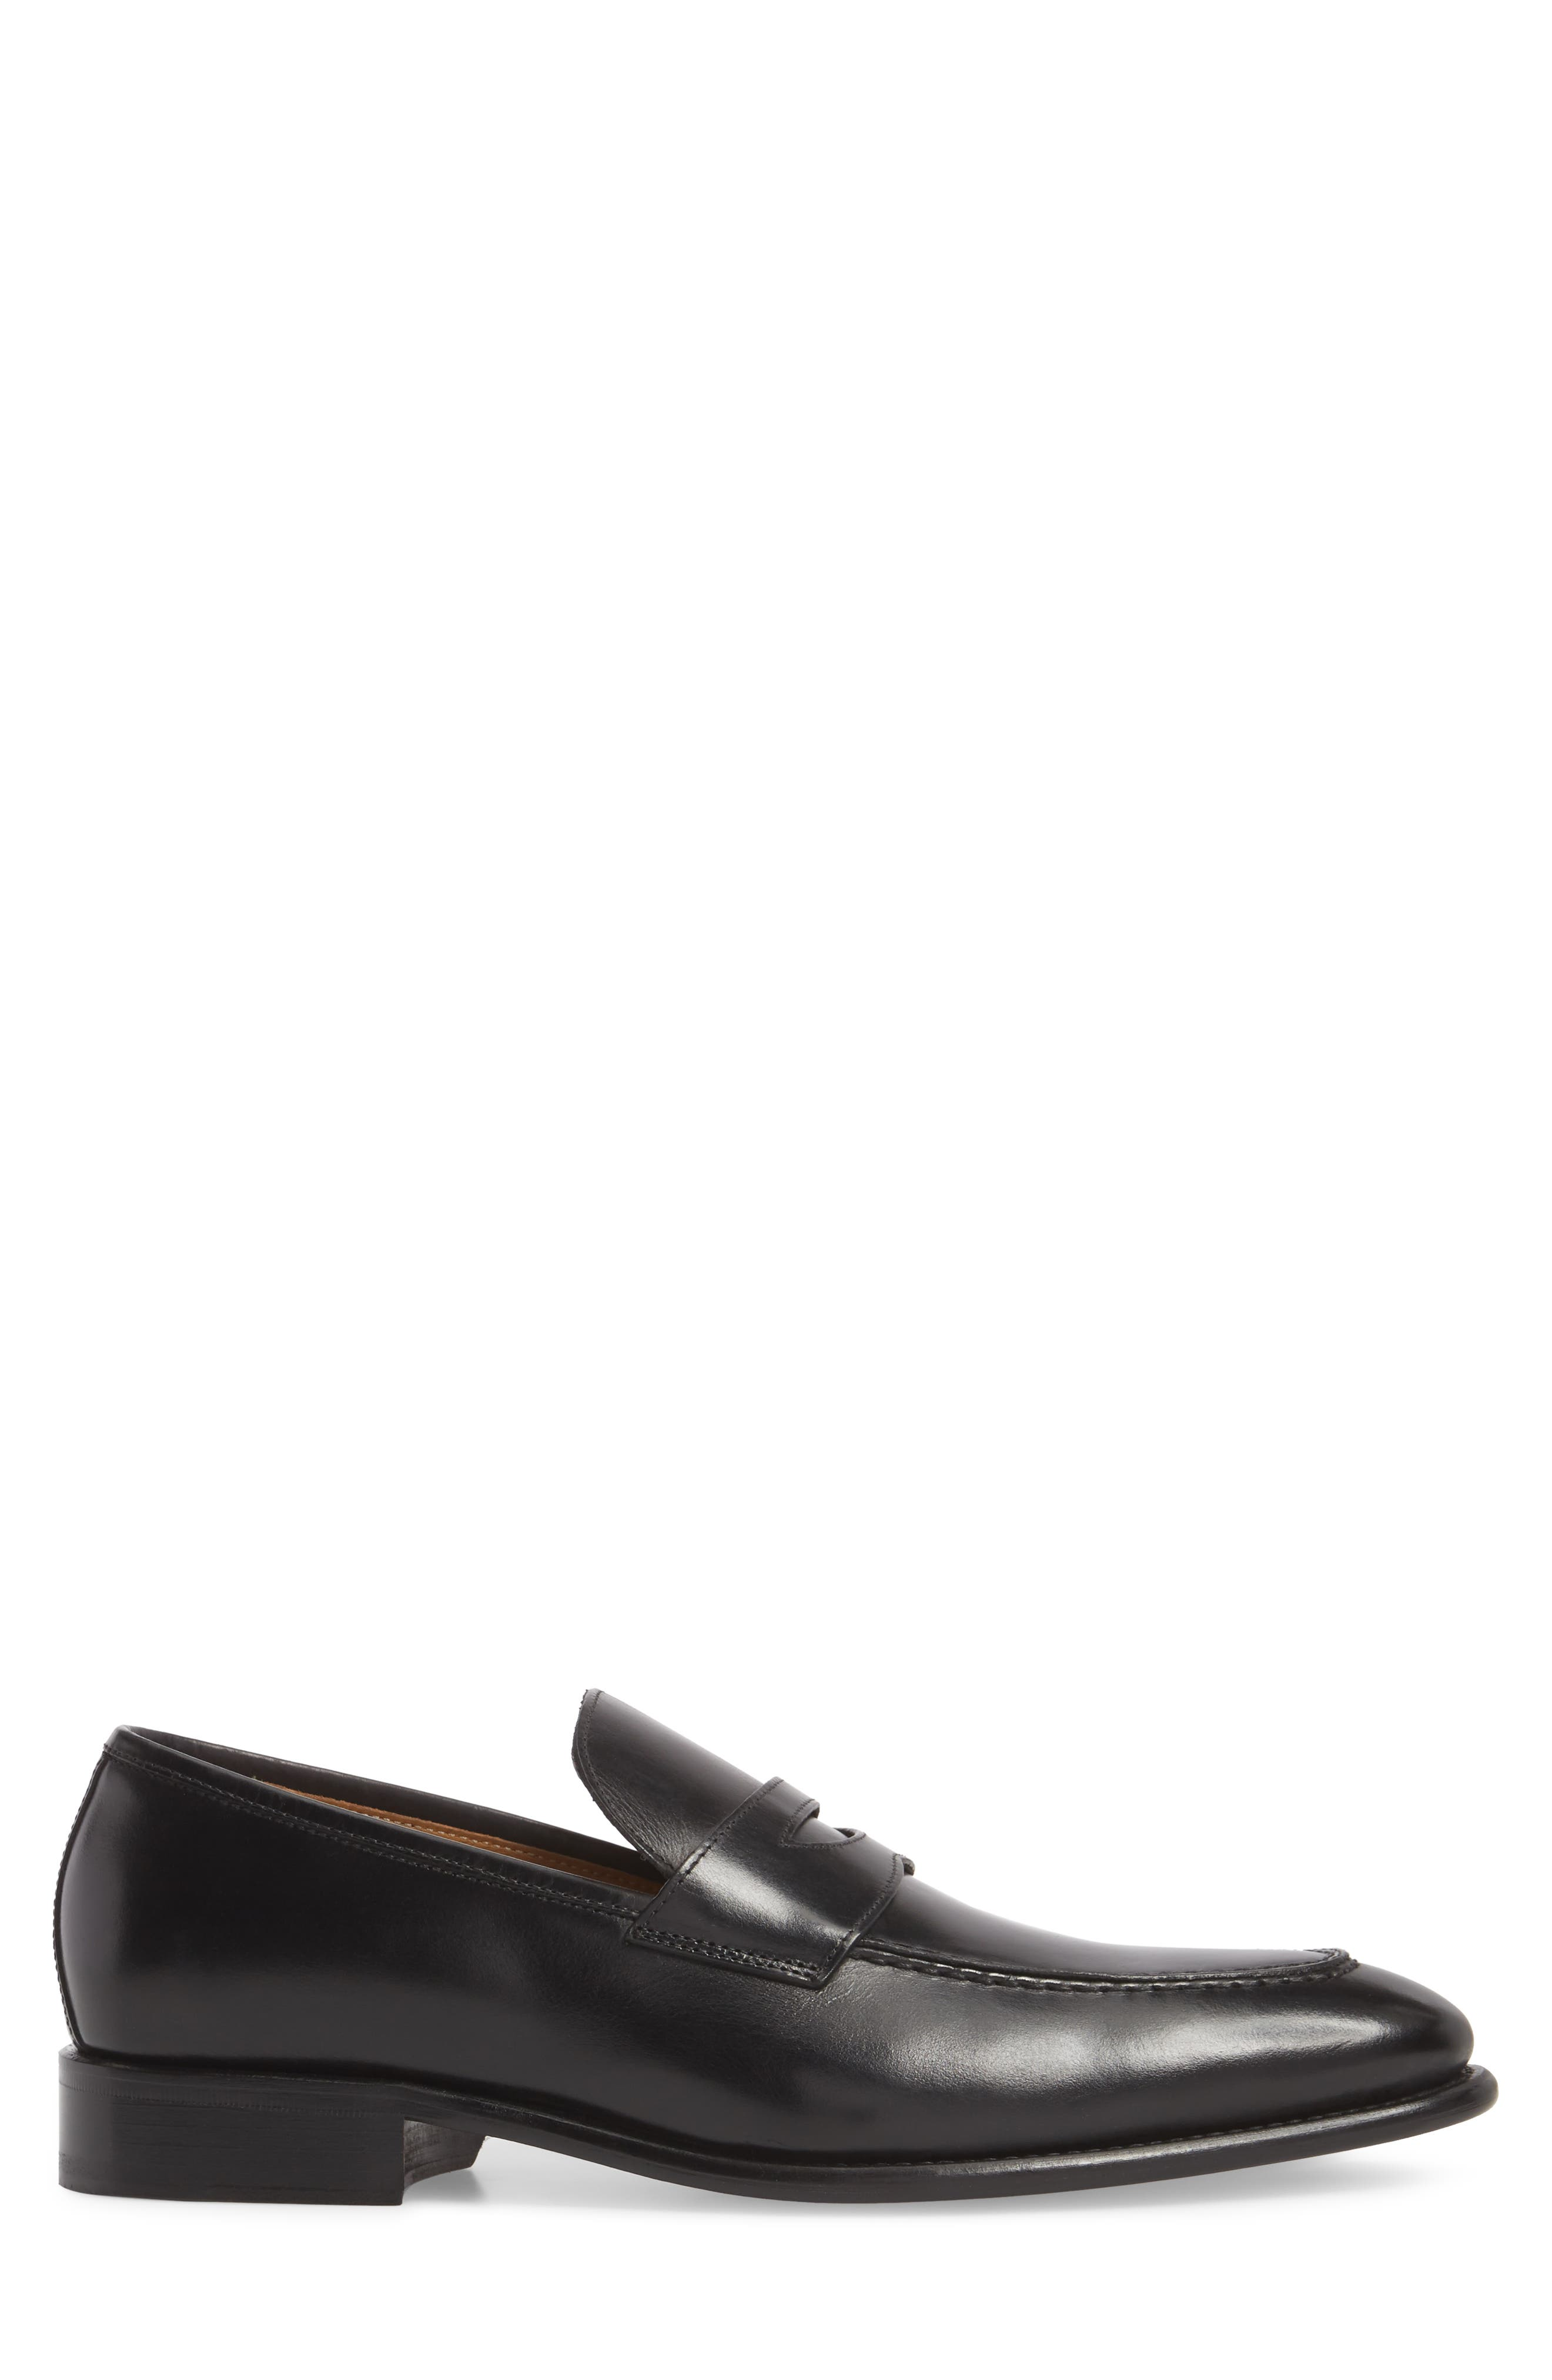 Imperial Venucci Apron Toe Penny Loafer,                             Alternate thumbnail 3, color,                             BLACK LEATHER